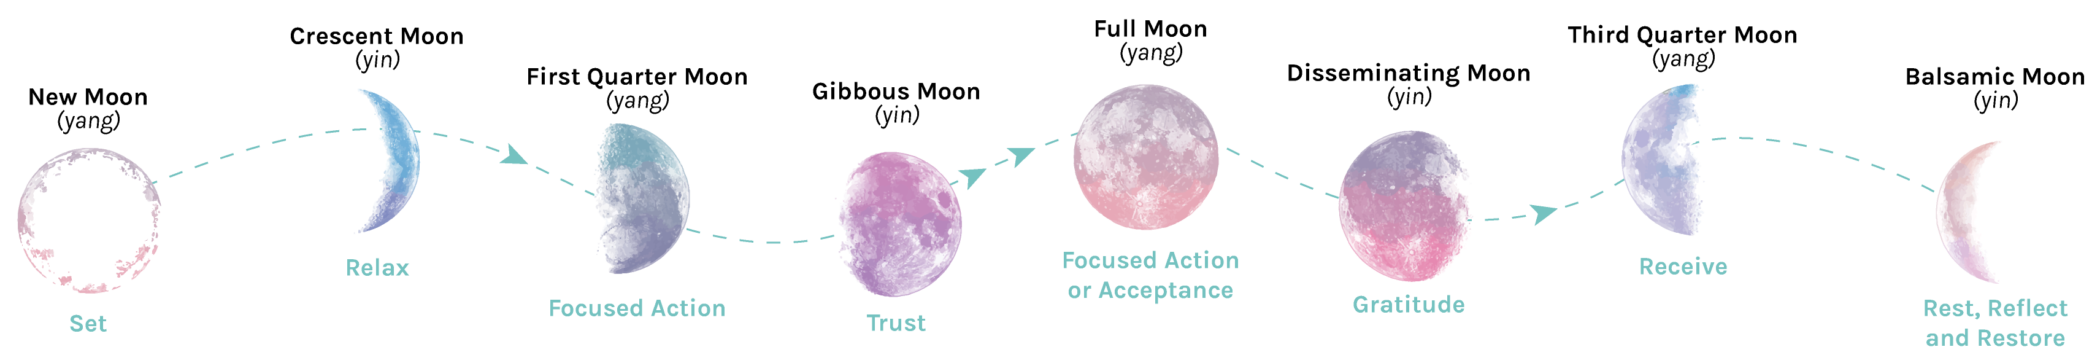 Moon Phases Banner with Labels